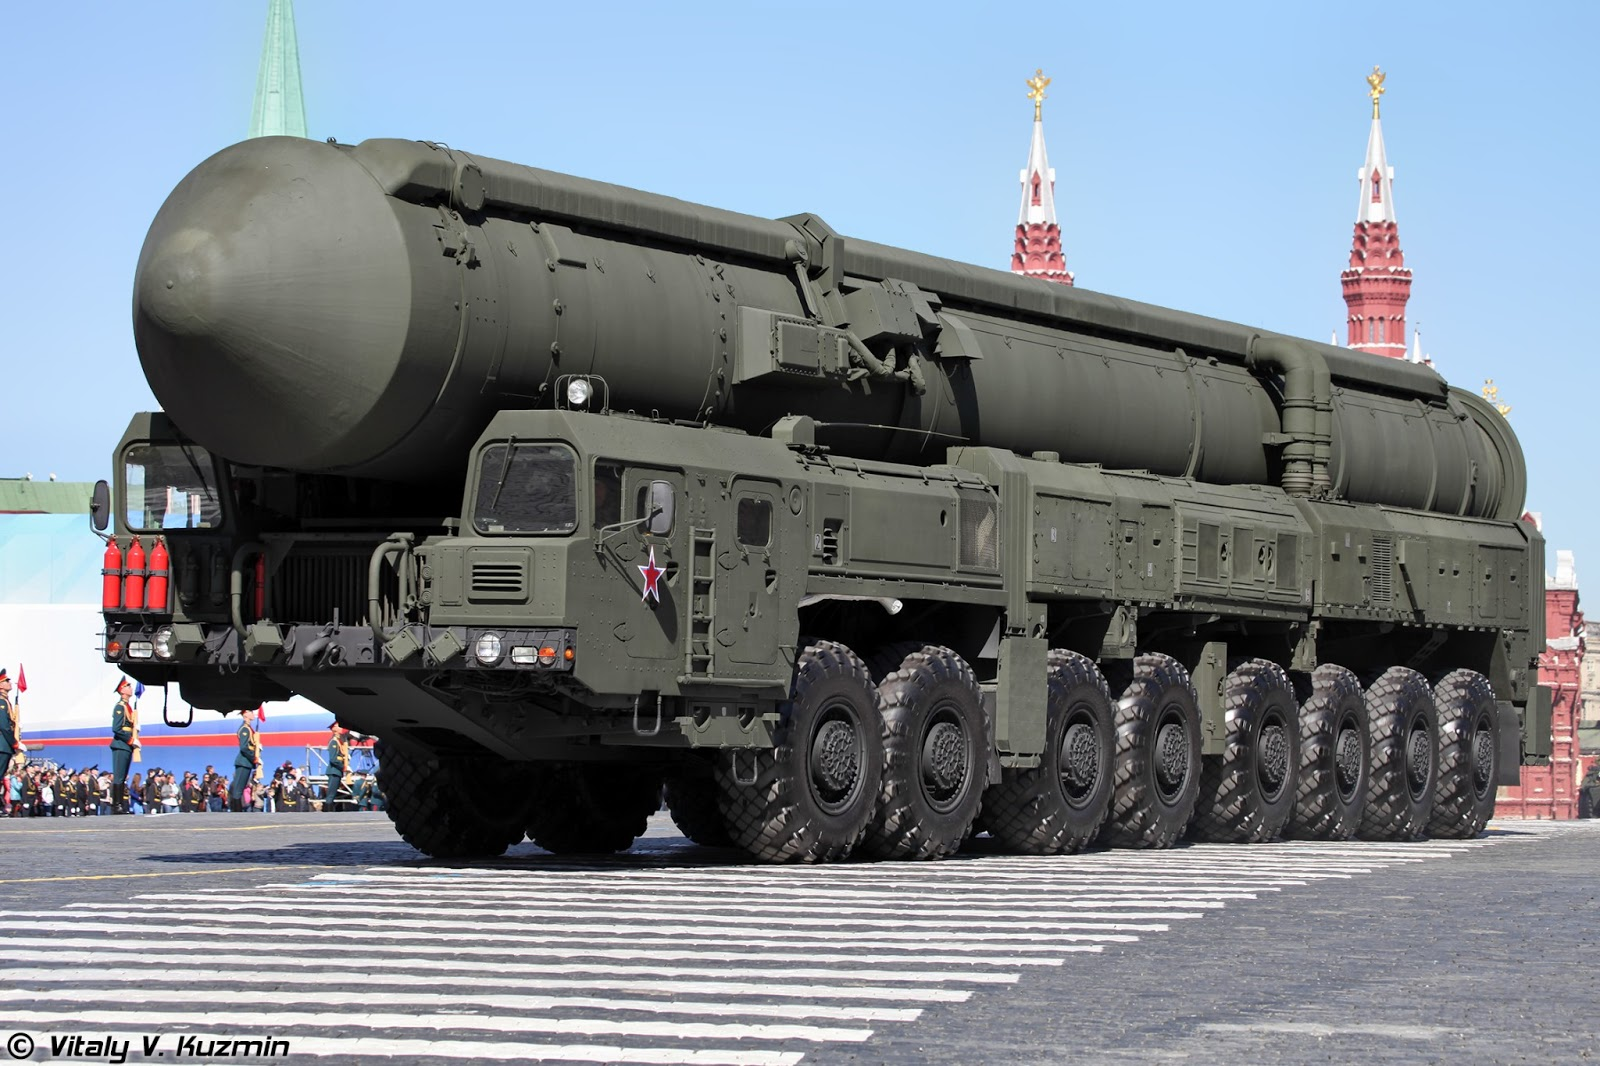 SS-29 (RS-24 or RT-24 Yars) Inner-Continental Ballistic Missiles. Road